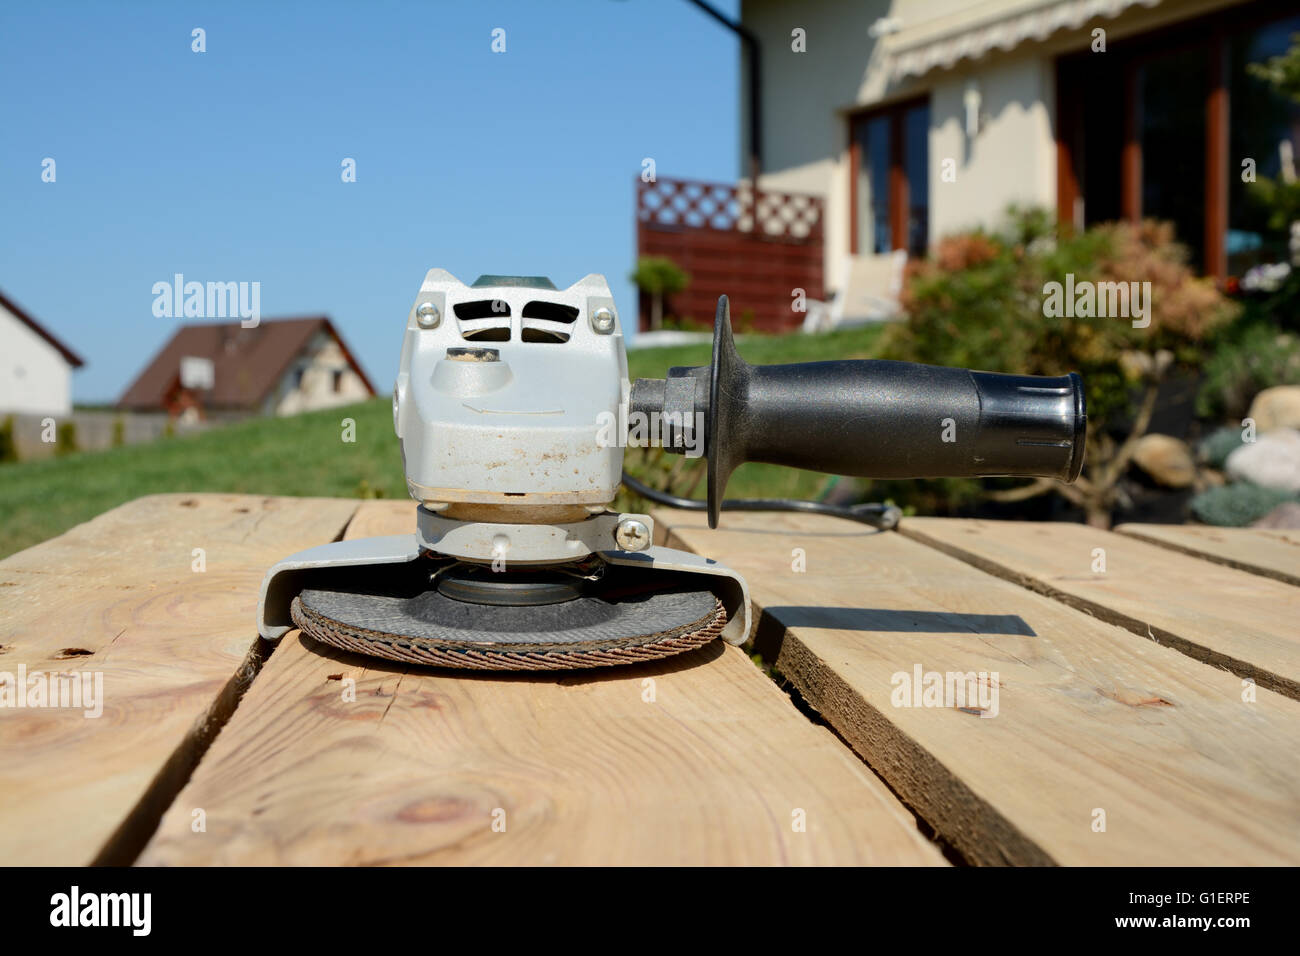 Angle grinder with abrasive disc on planks after work. Stock Photo